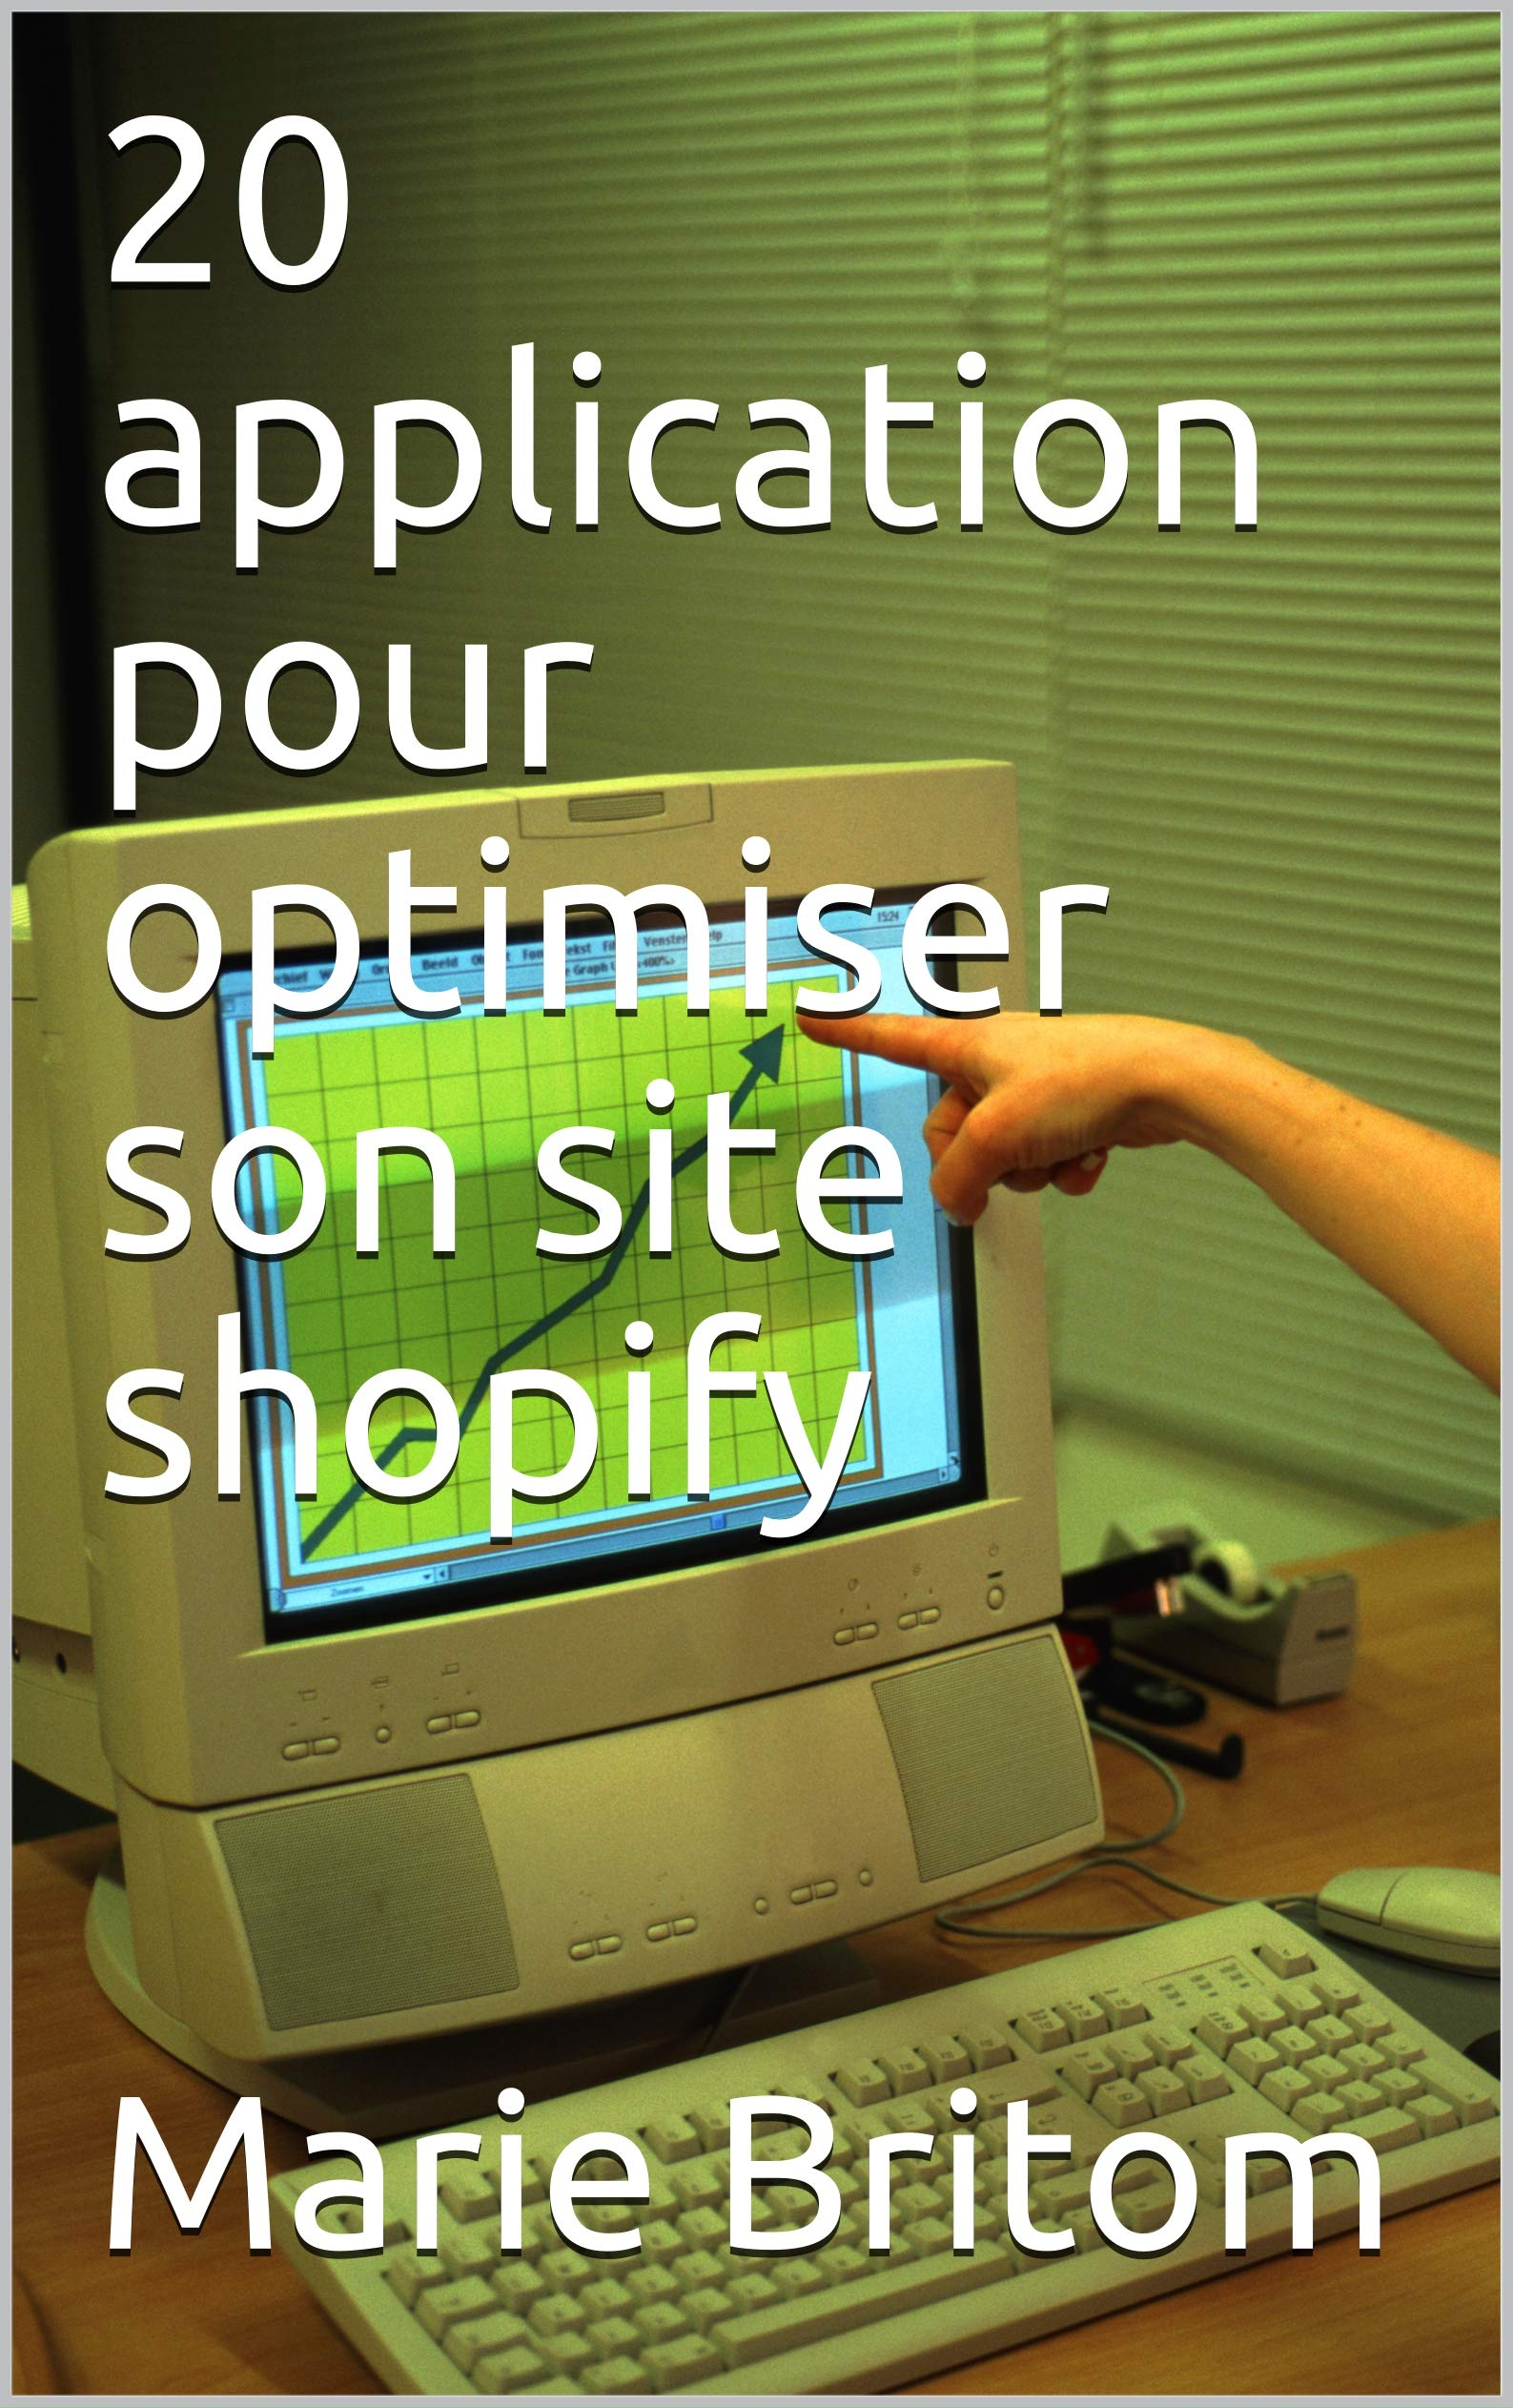 20 application pour optimiser son site shopify (French Edition)